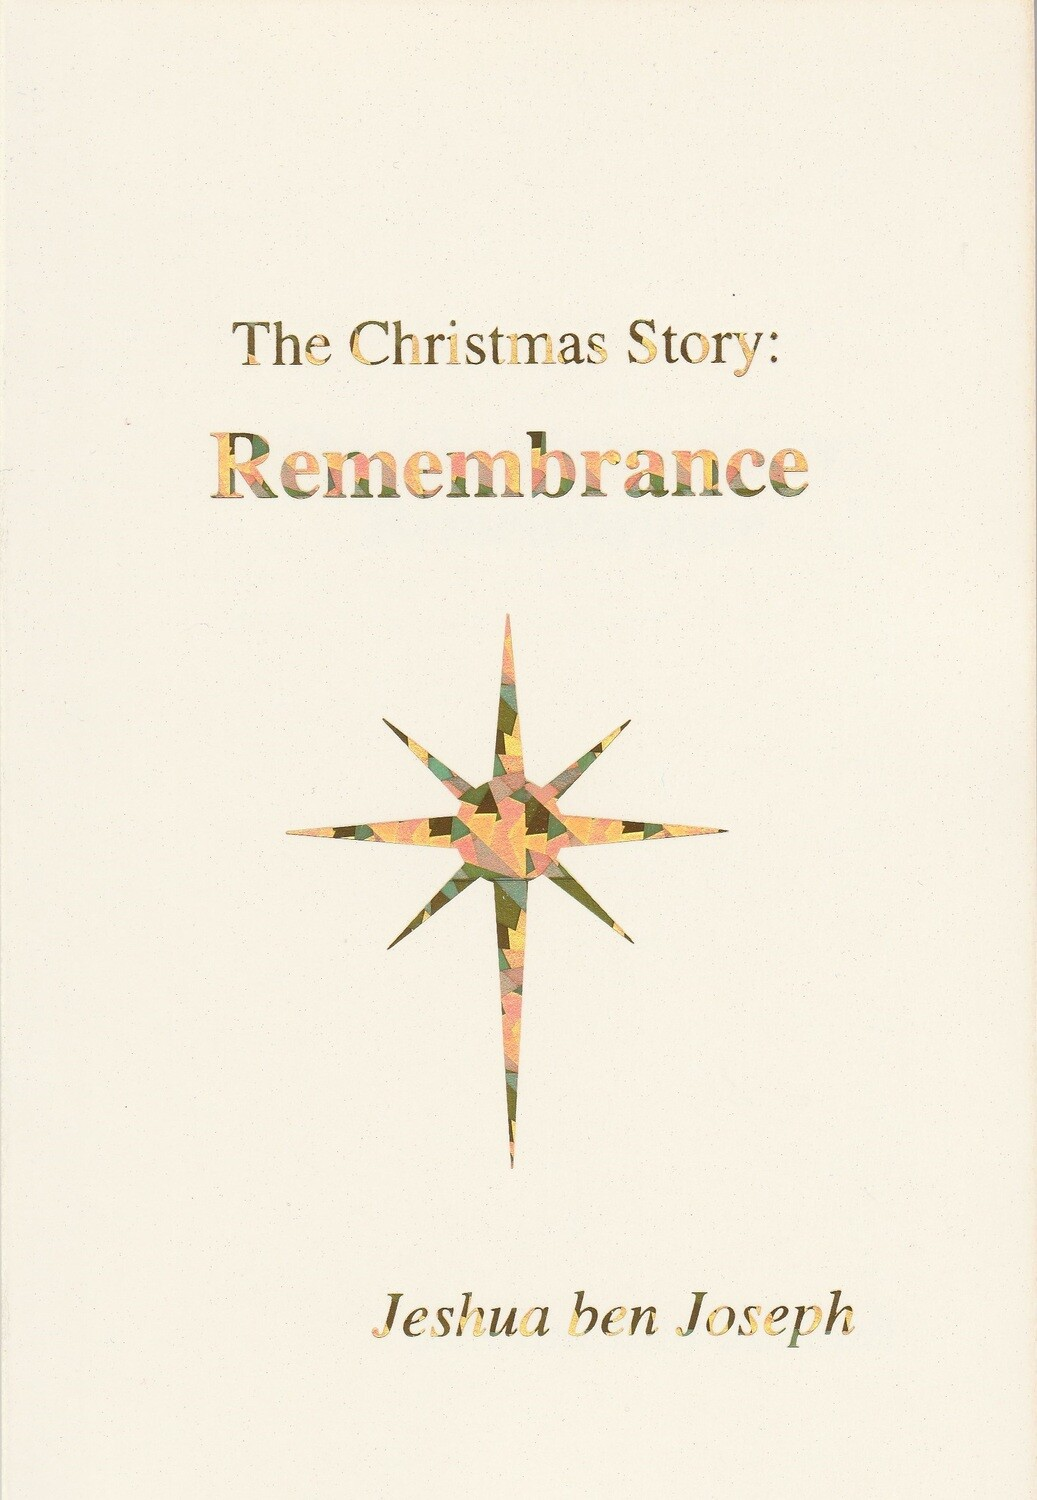 The Christmas Story: Remembrance